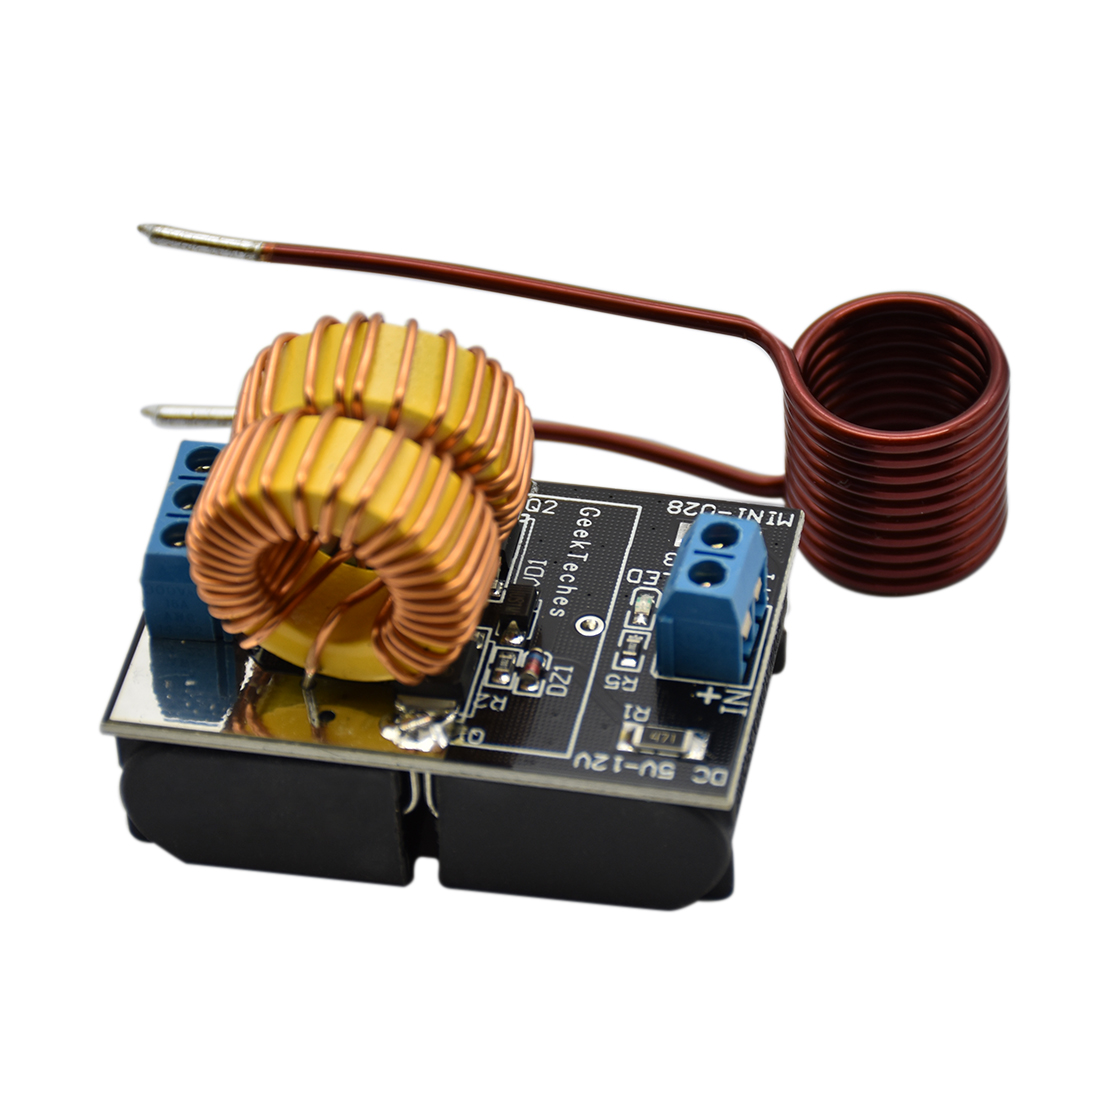 5V~12V Zero Voltage Switching ZVS Induction Heating Power Supply Module With Coil Power Supply Heating Power Supply Module